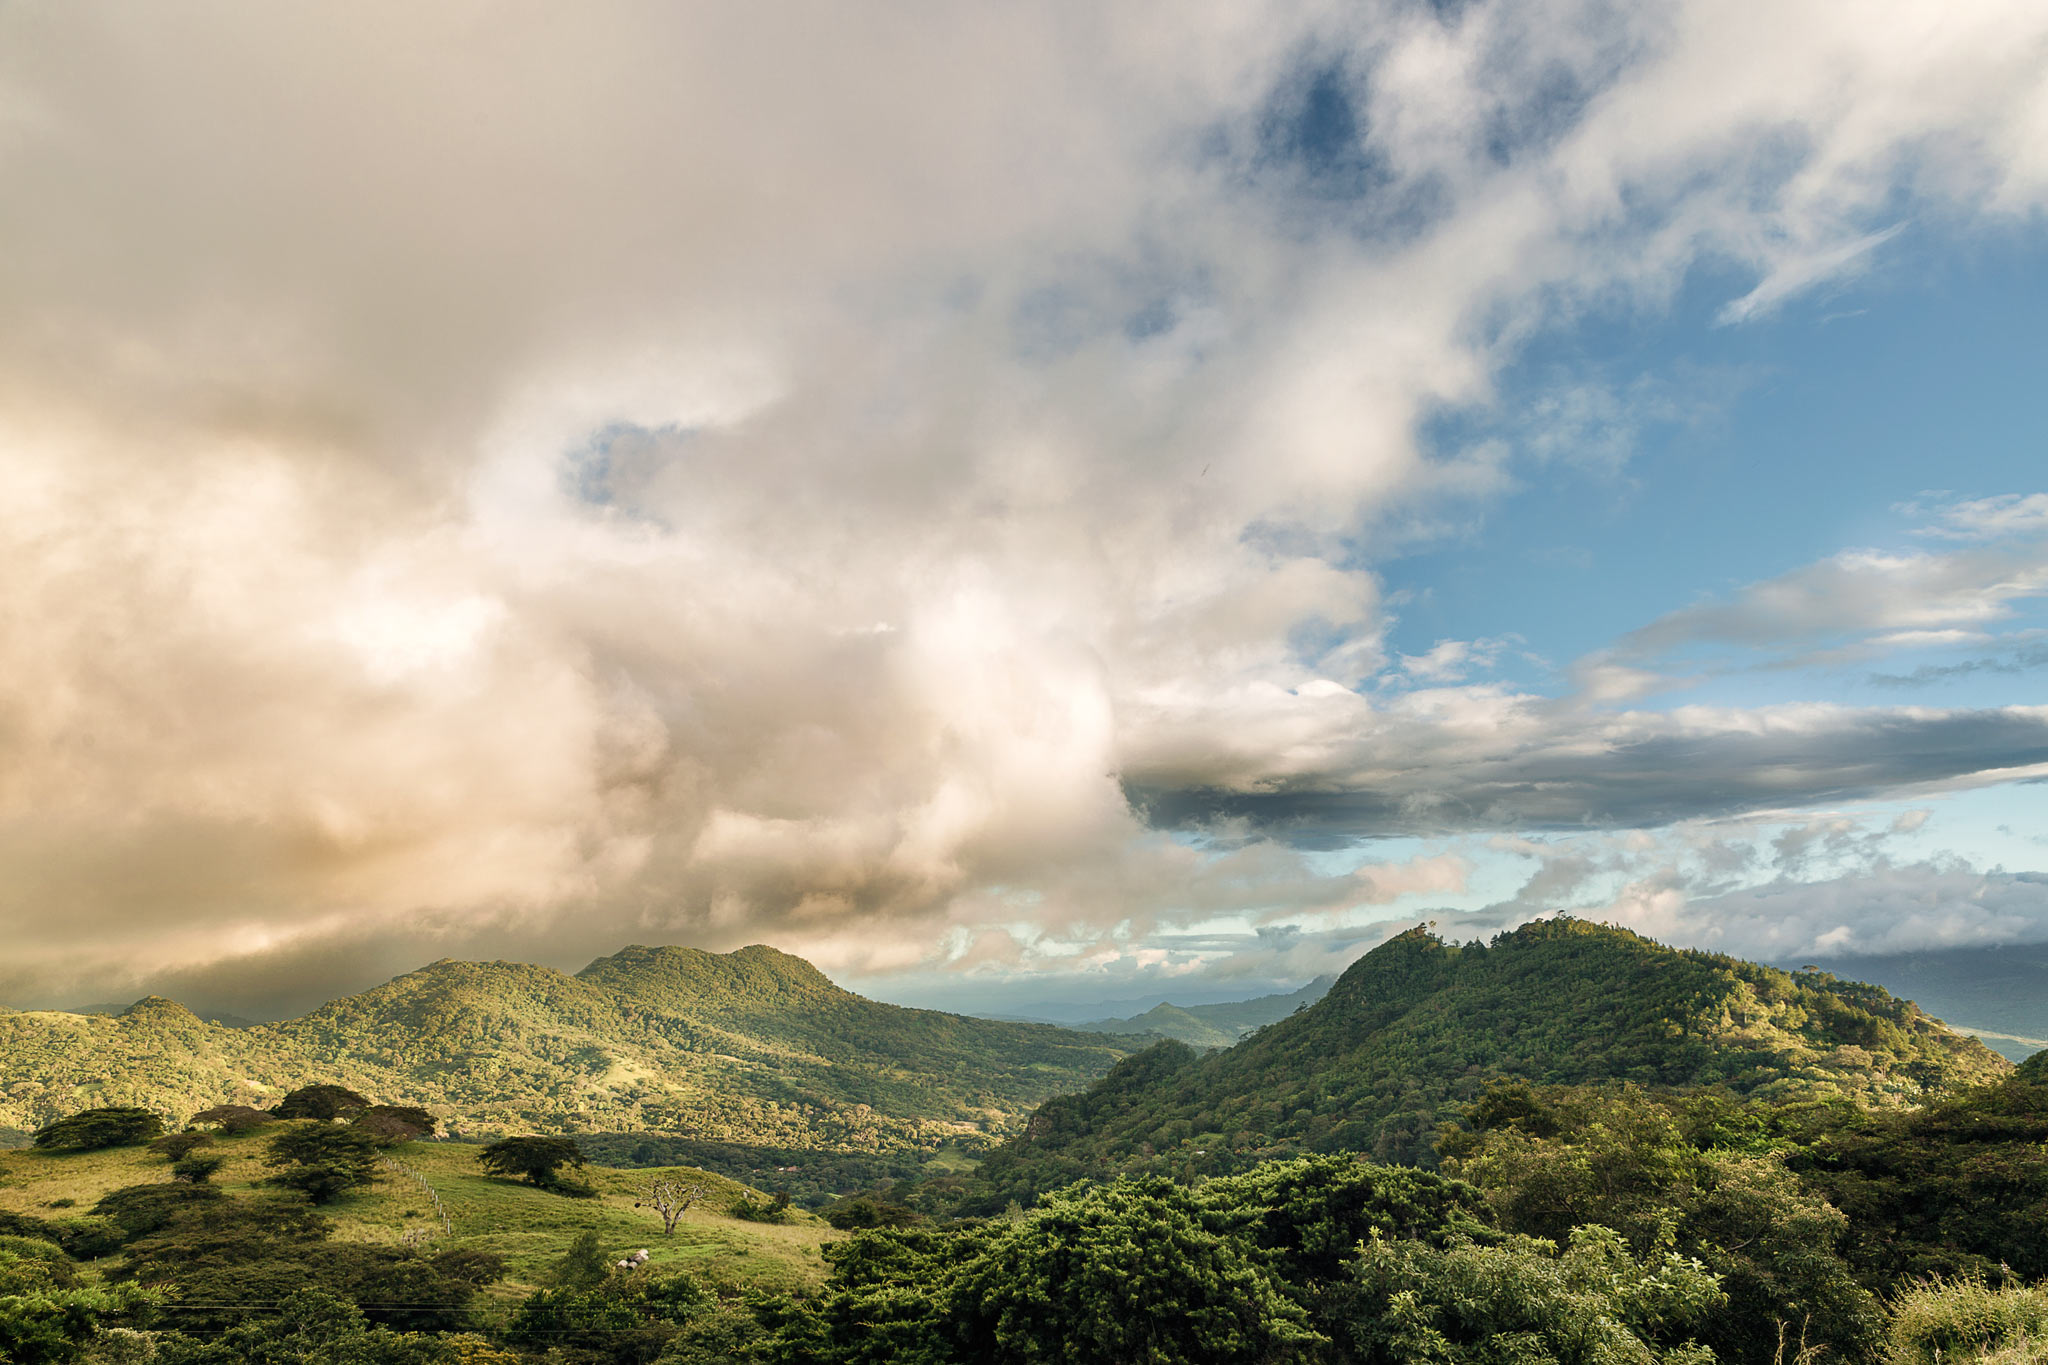 The rolling hills of Matagalpa. While taking this picture, a guy on a motorcycle rolled up to us and started asking questions about my camera. All was good until we realized he carried a gun. I'm sure he meant nothing by it and he wasn't directly threatening, but we took no chances and fled the scene fast!